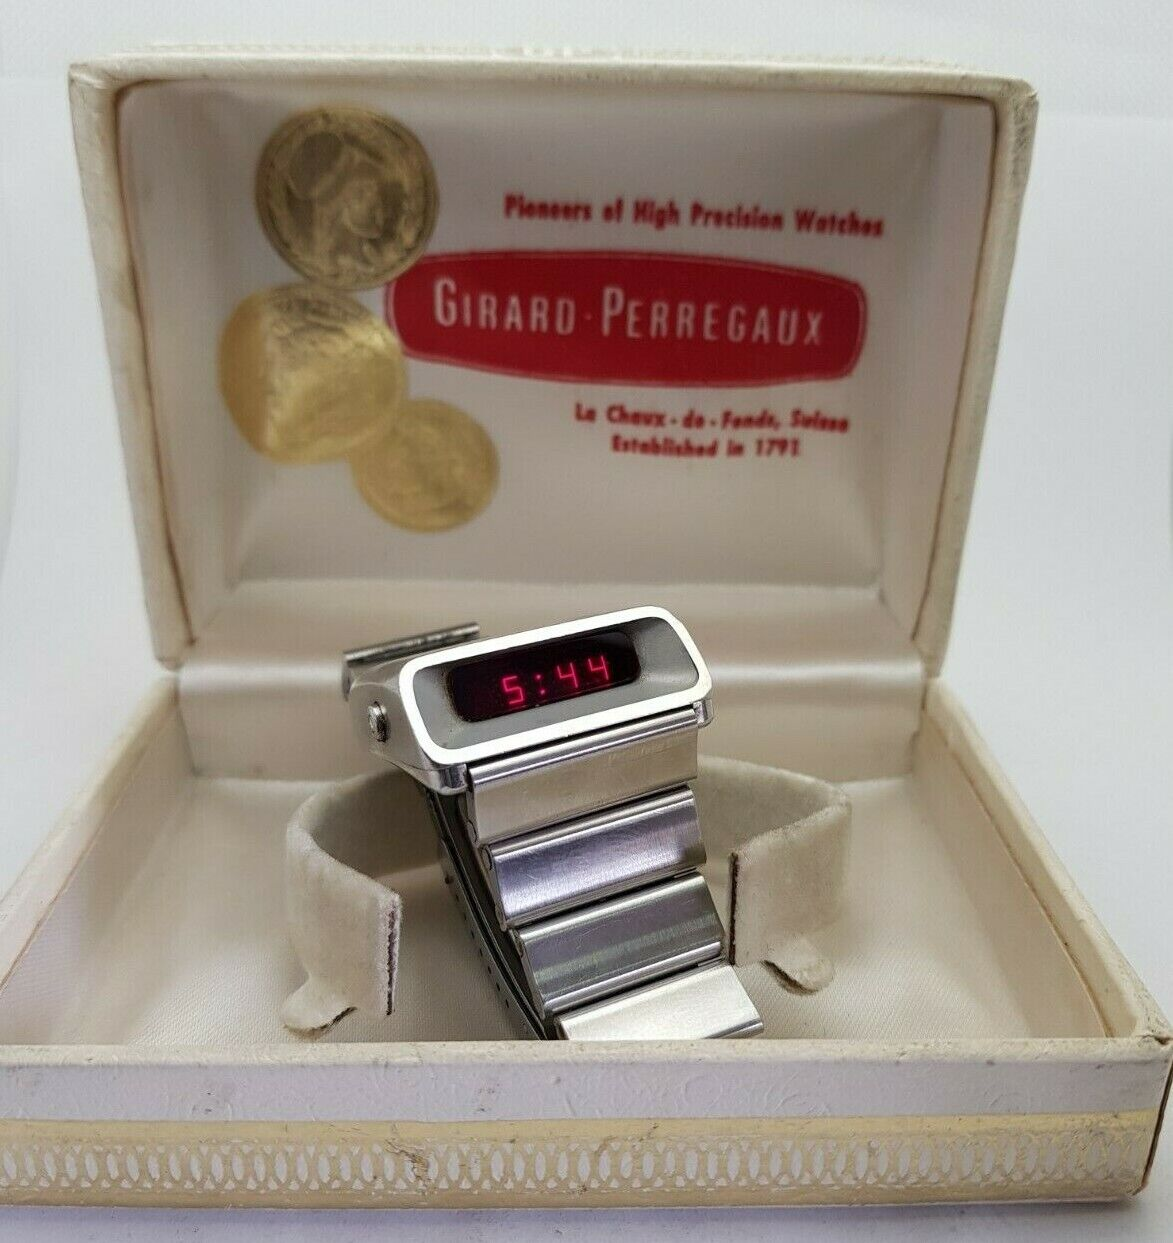 IMMPECABLE GIRARD-PERREGAUX LED CASQUETTE DIGITAL REF. 9931 INCLUDE BOX - watch picture 1